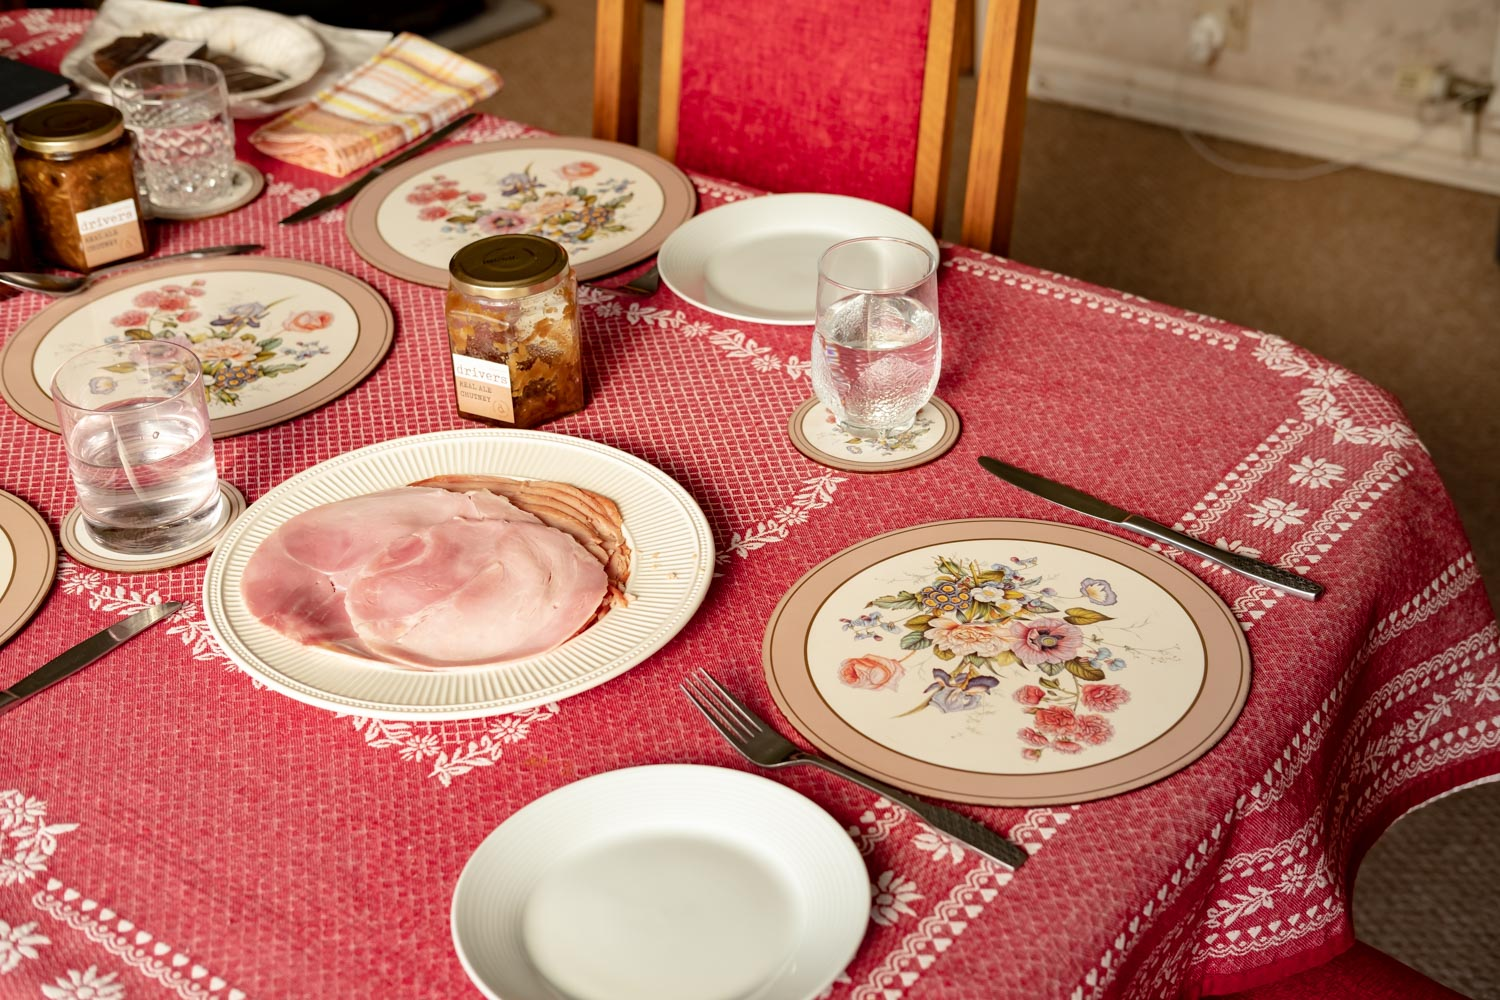 Table set with a red table cloth and placemats. On the middle of the table is a plate of sliced ham and a jar of chutney waiting to be eaten.